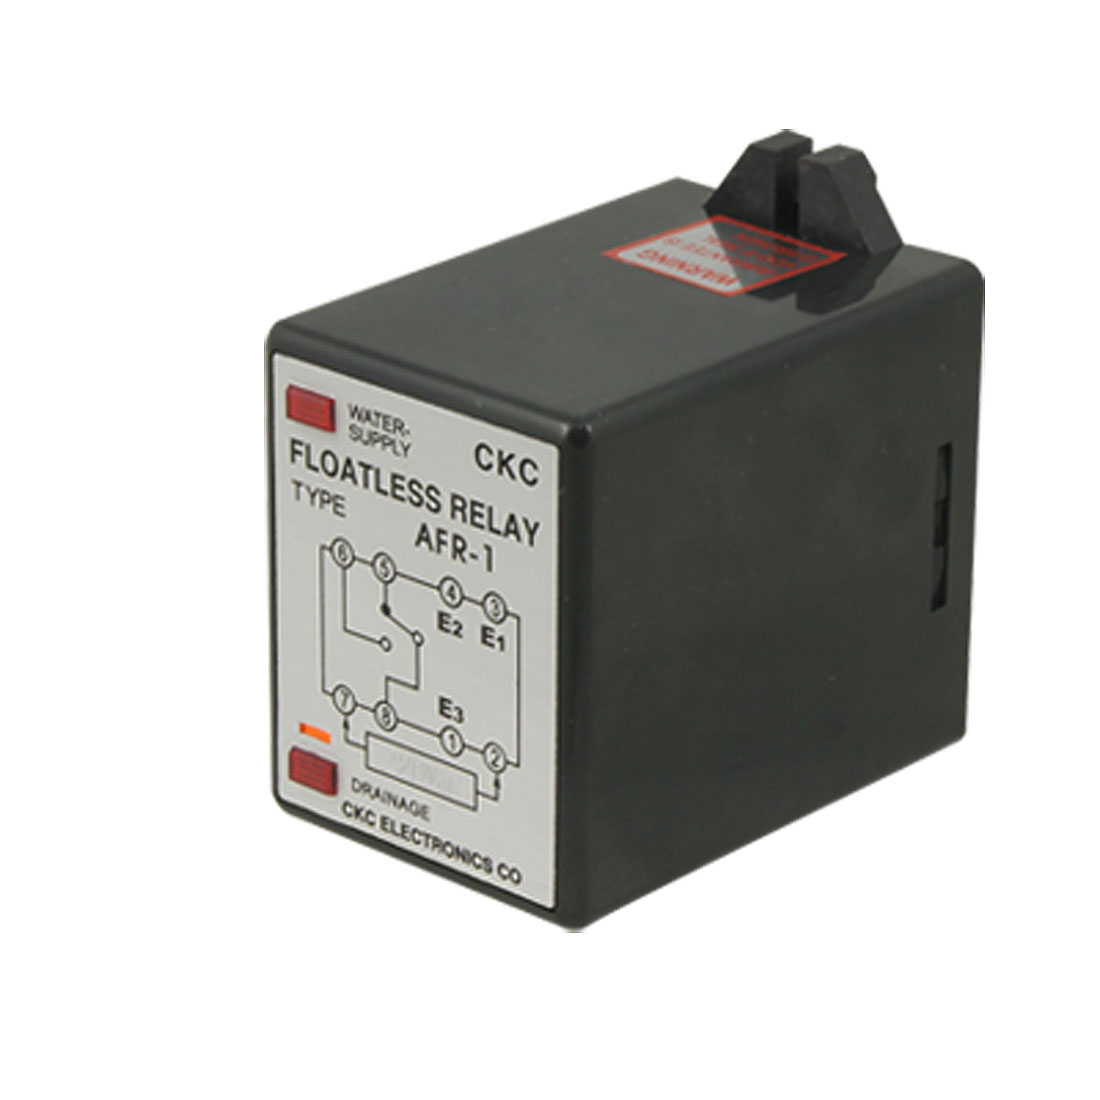 Electromatic Water Liquid Level Floatless Relay AFR-1 AC 220V Float Controller